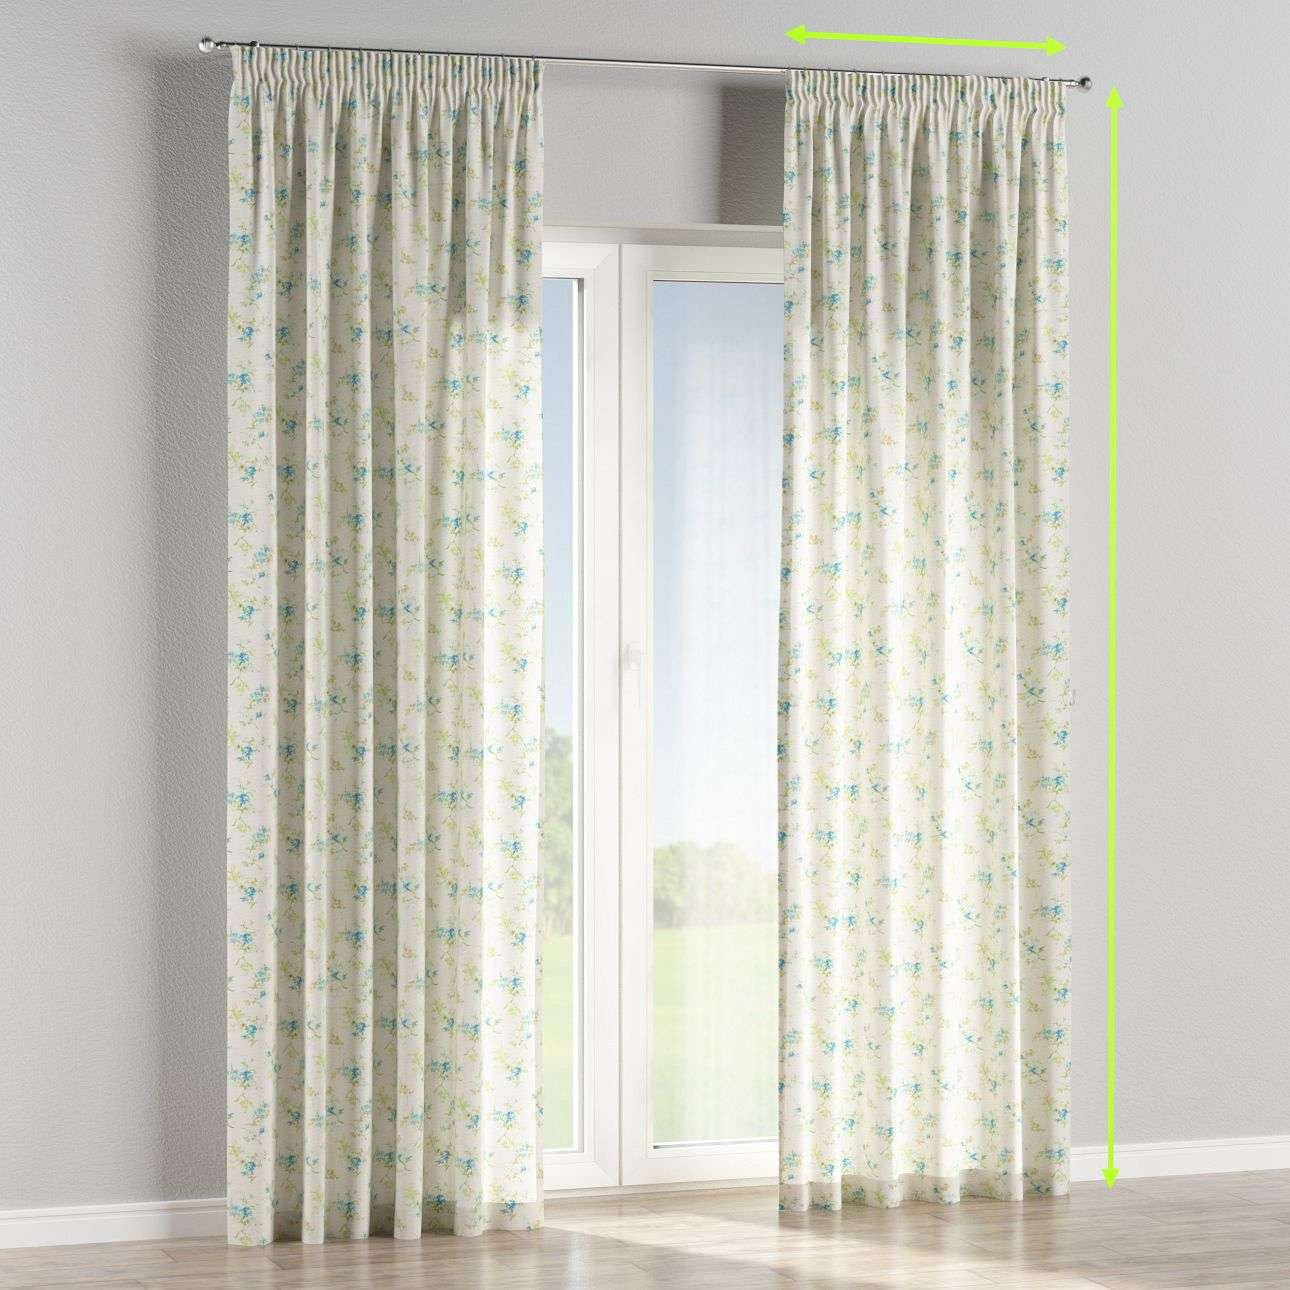 Pencil pleat lined curtains in collection Mirella, fabric: 141-16